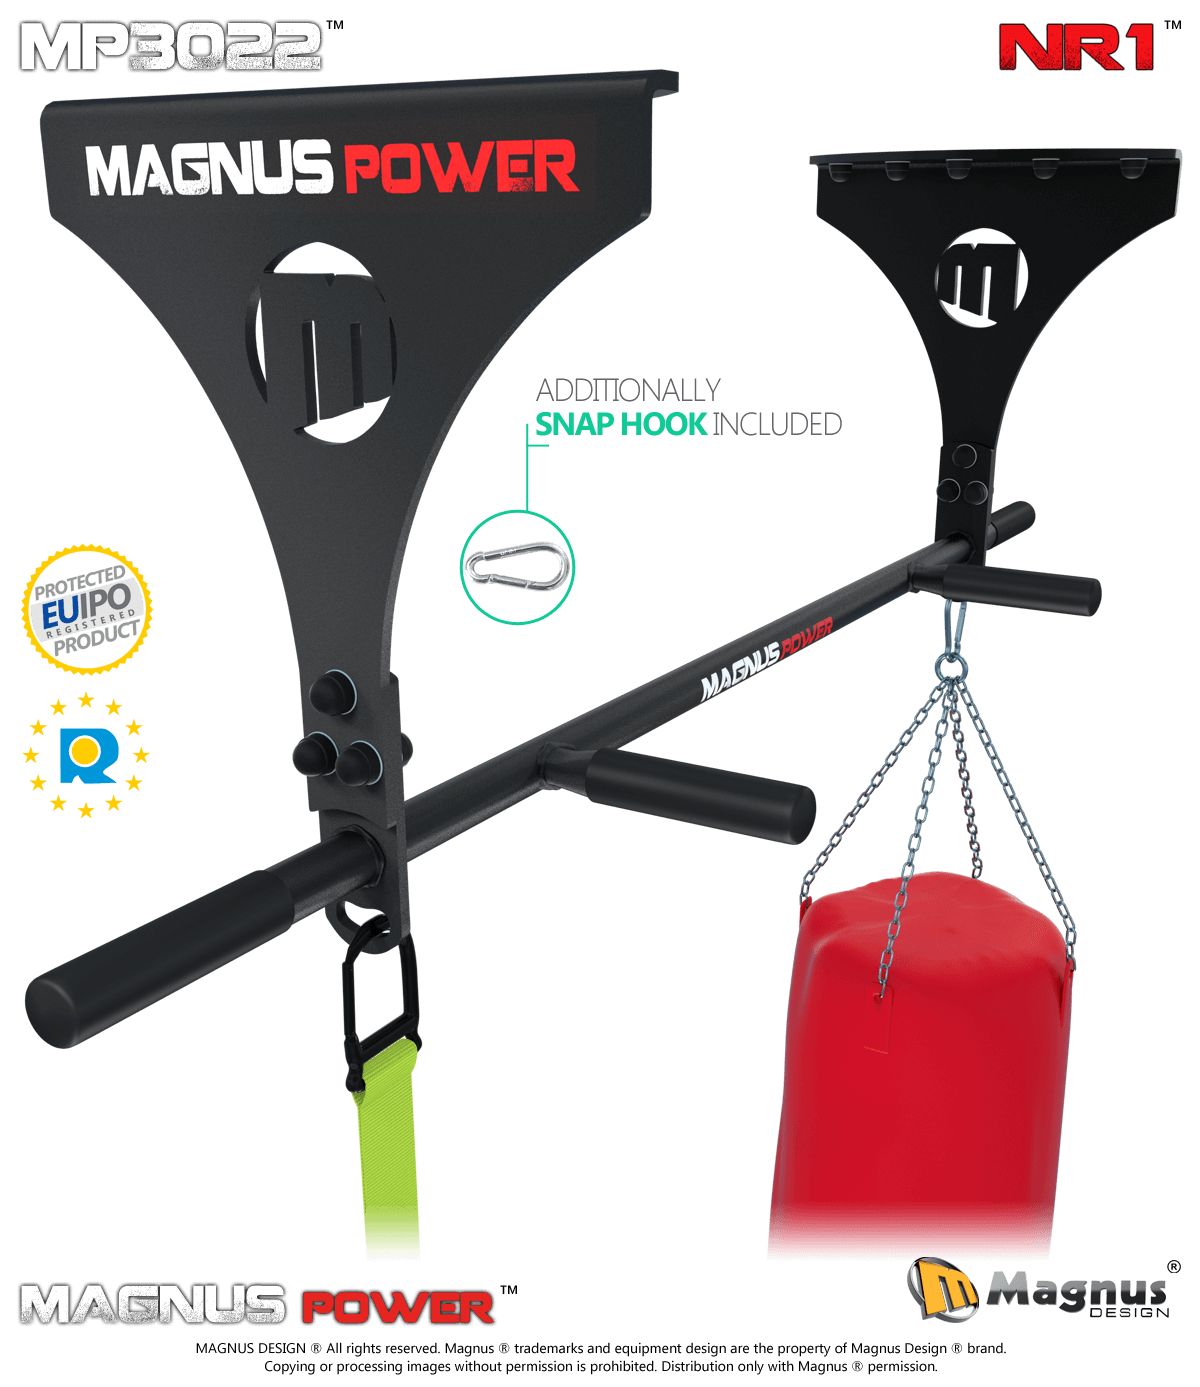 Pullups on Magnus pull up bar, training with heavy bag for boxing, TRX belts exercises